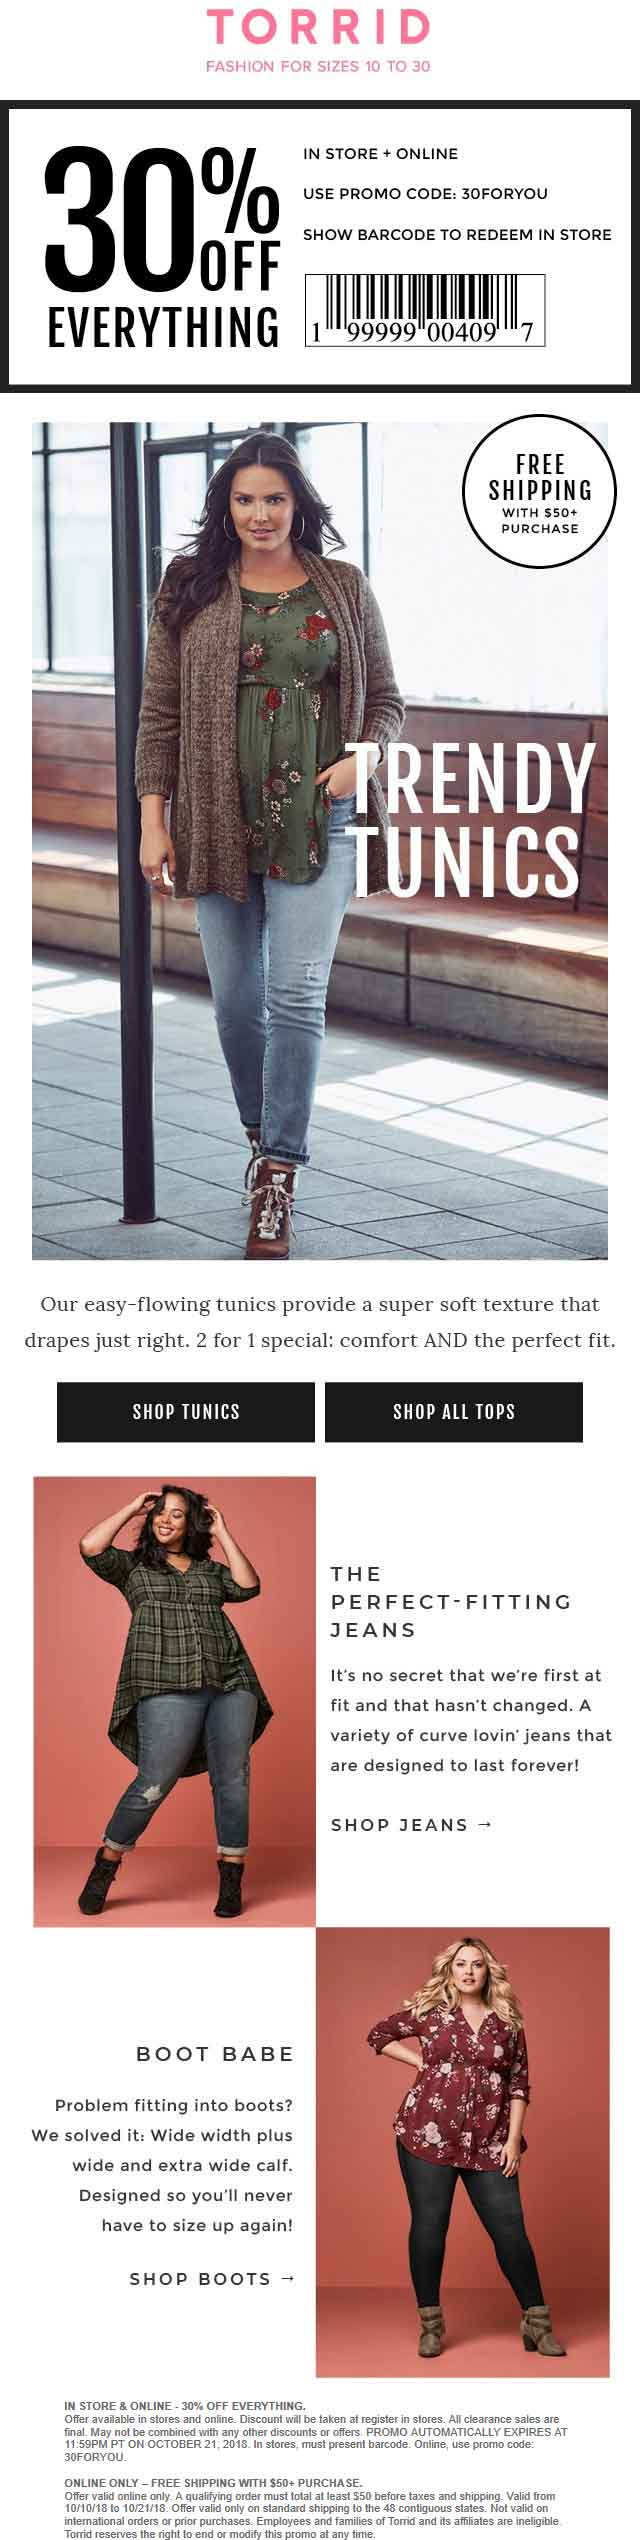 Torrid Coupon May 2019 30% off everything at Torrid, or online via promo code 30FORYOU